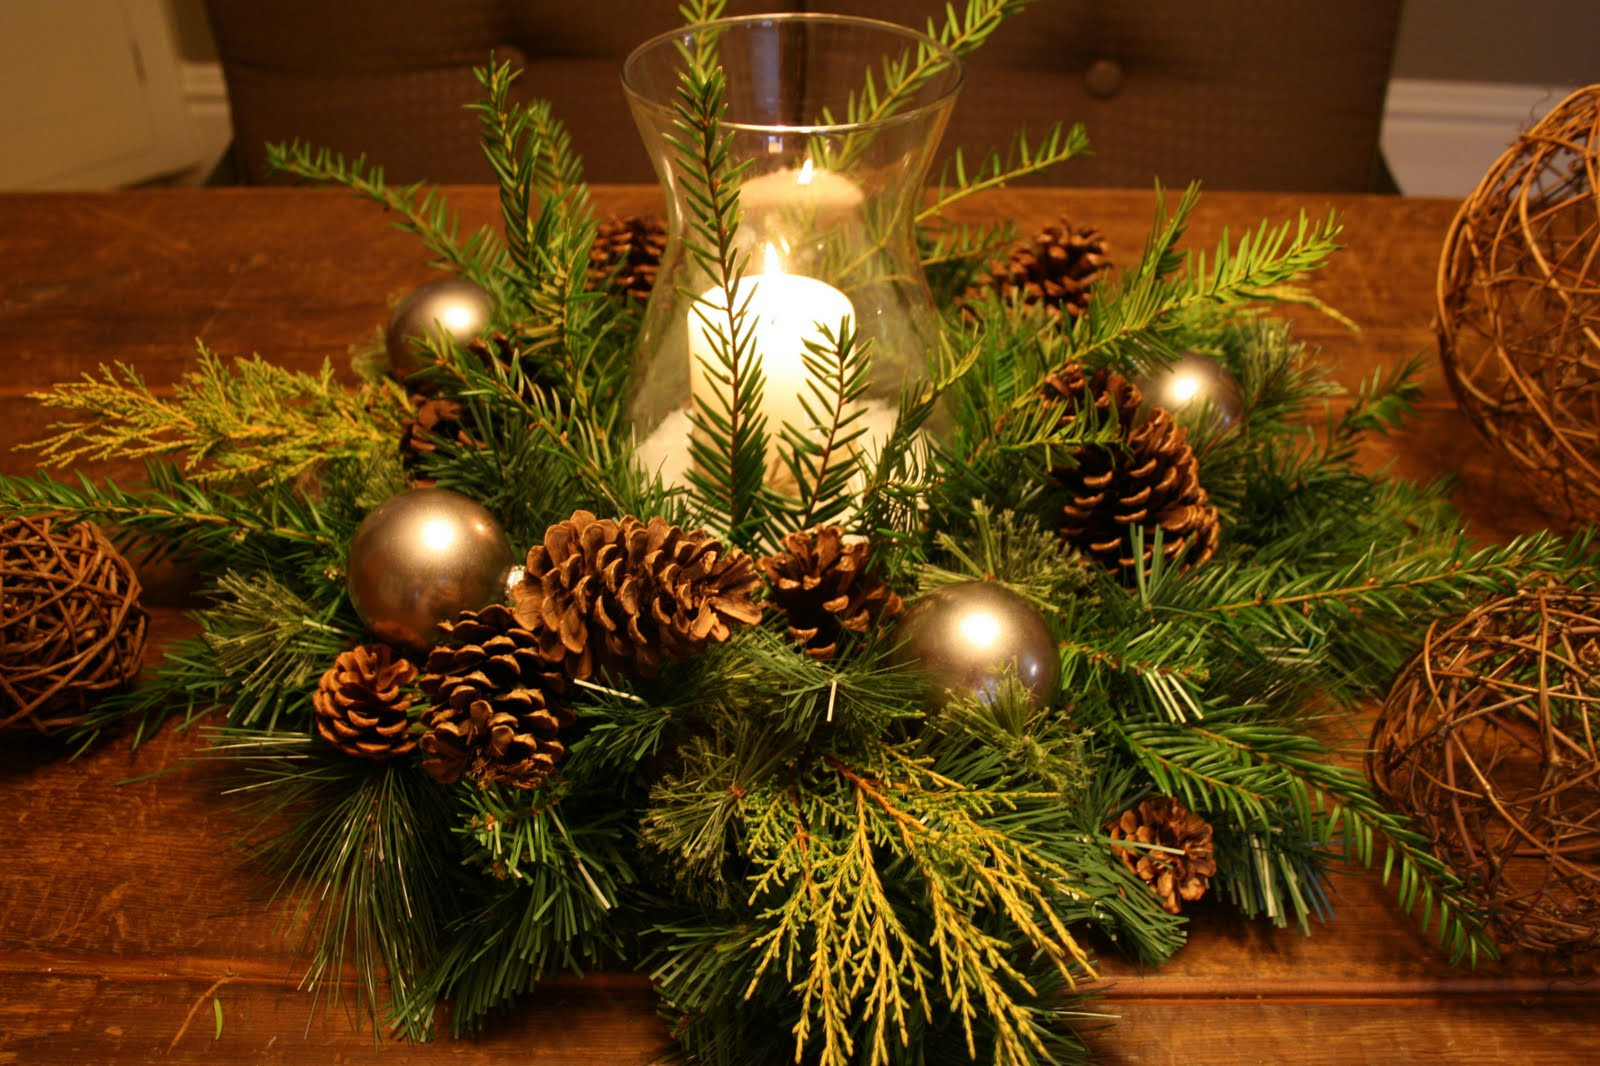 Best ideas about Christmas Centerpieces DIY . Save or Pin 23 Christmas Centerpiece Ideas That Will Raise Everybody's Now.